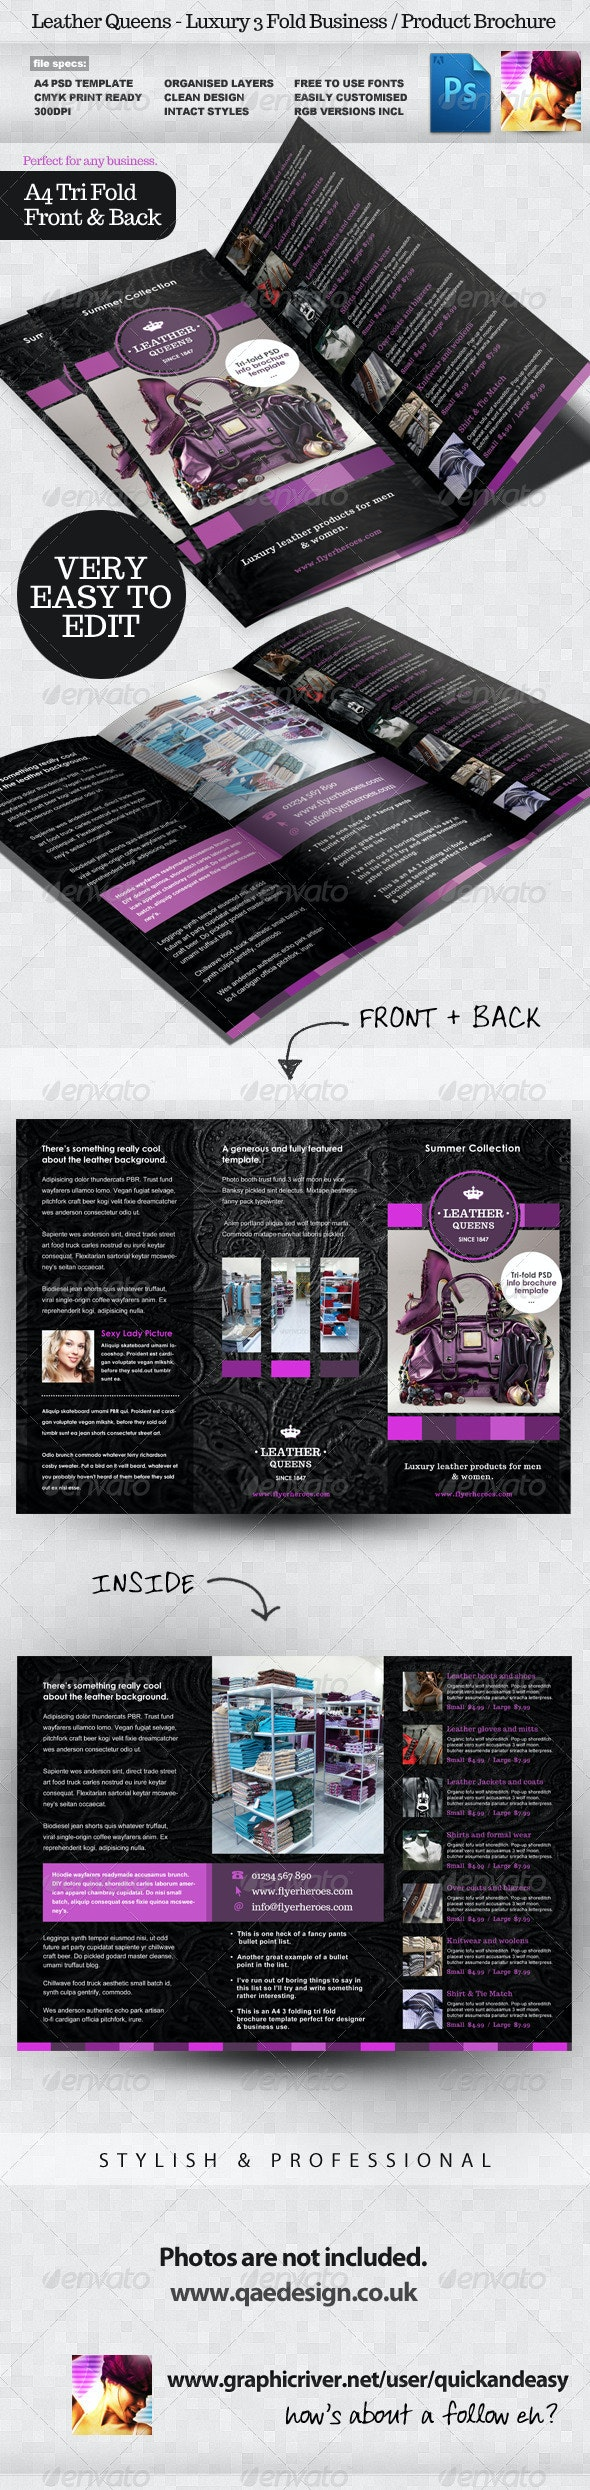 Leather Queens 3 Fold Product Brochure Template - Informational Brochures